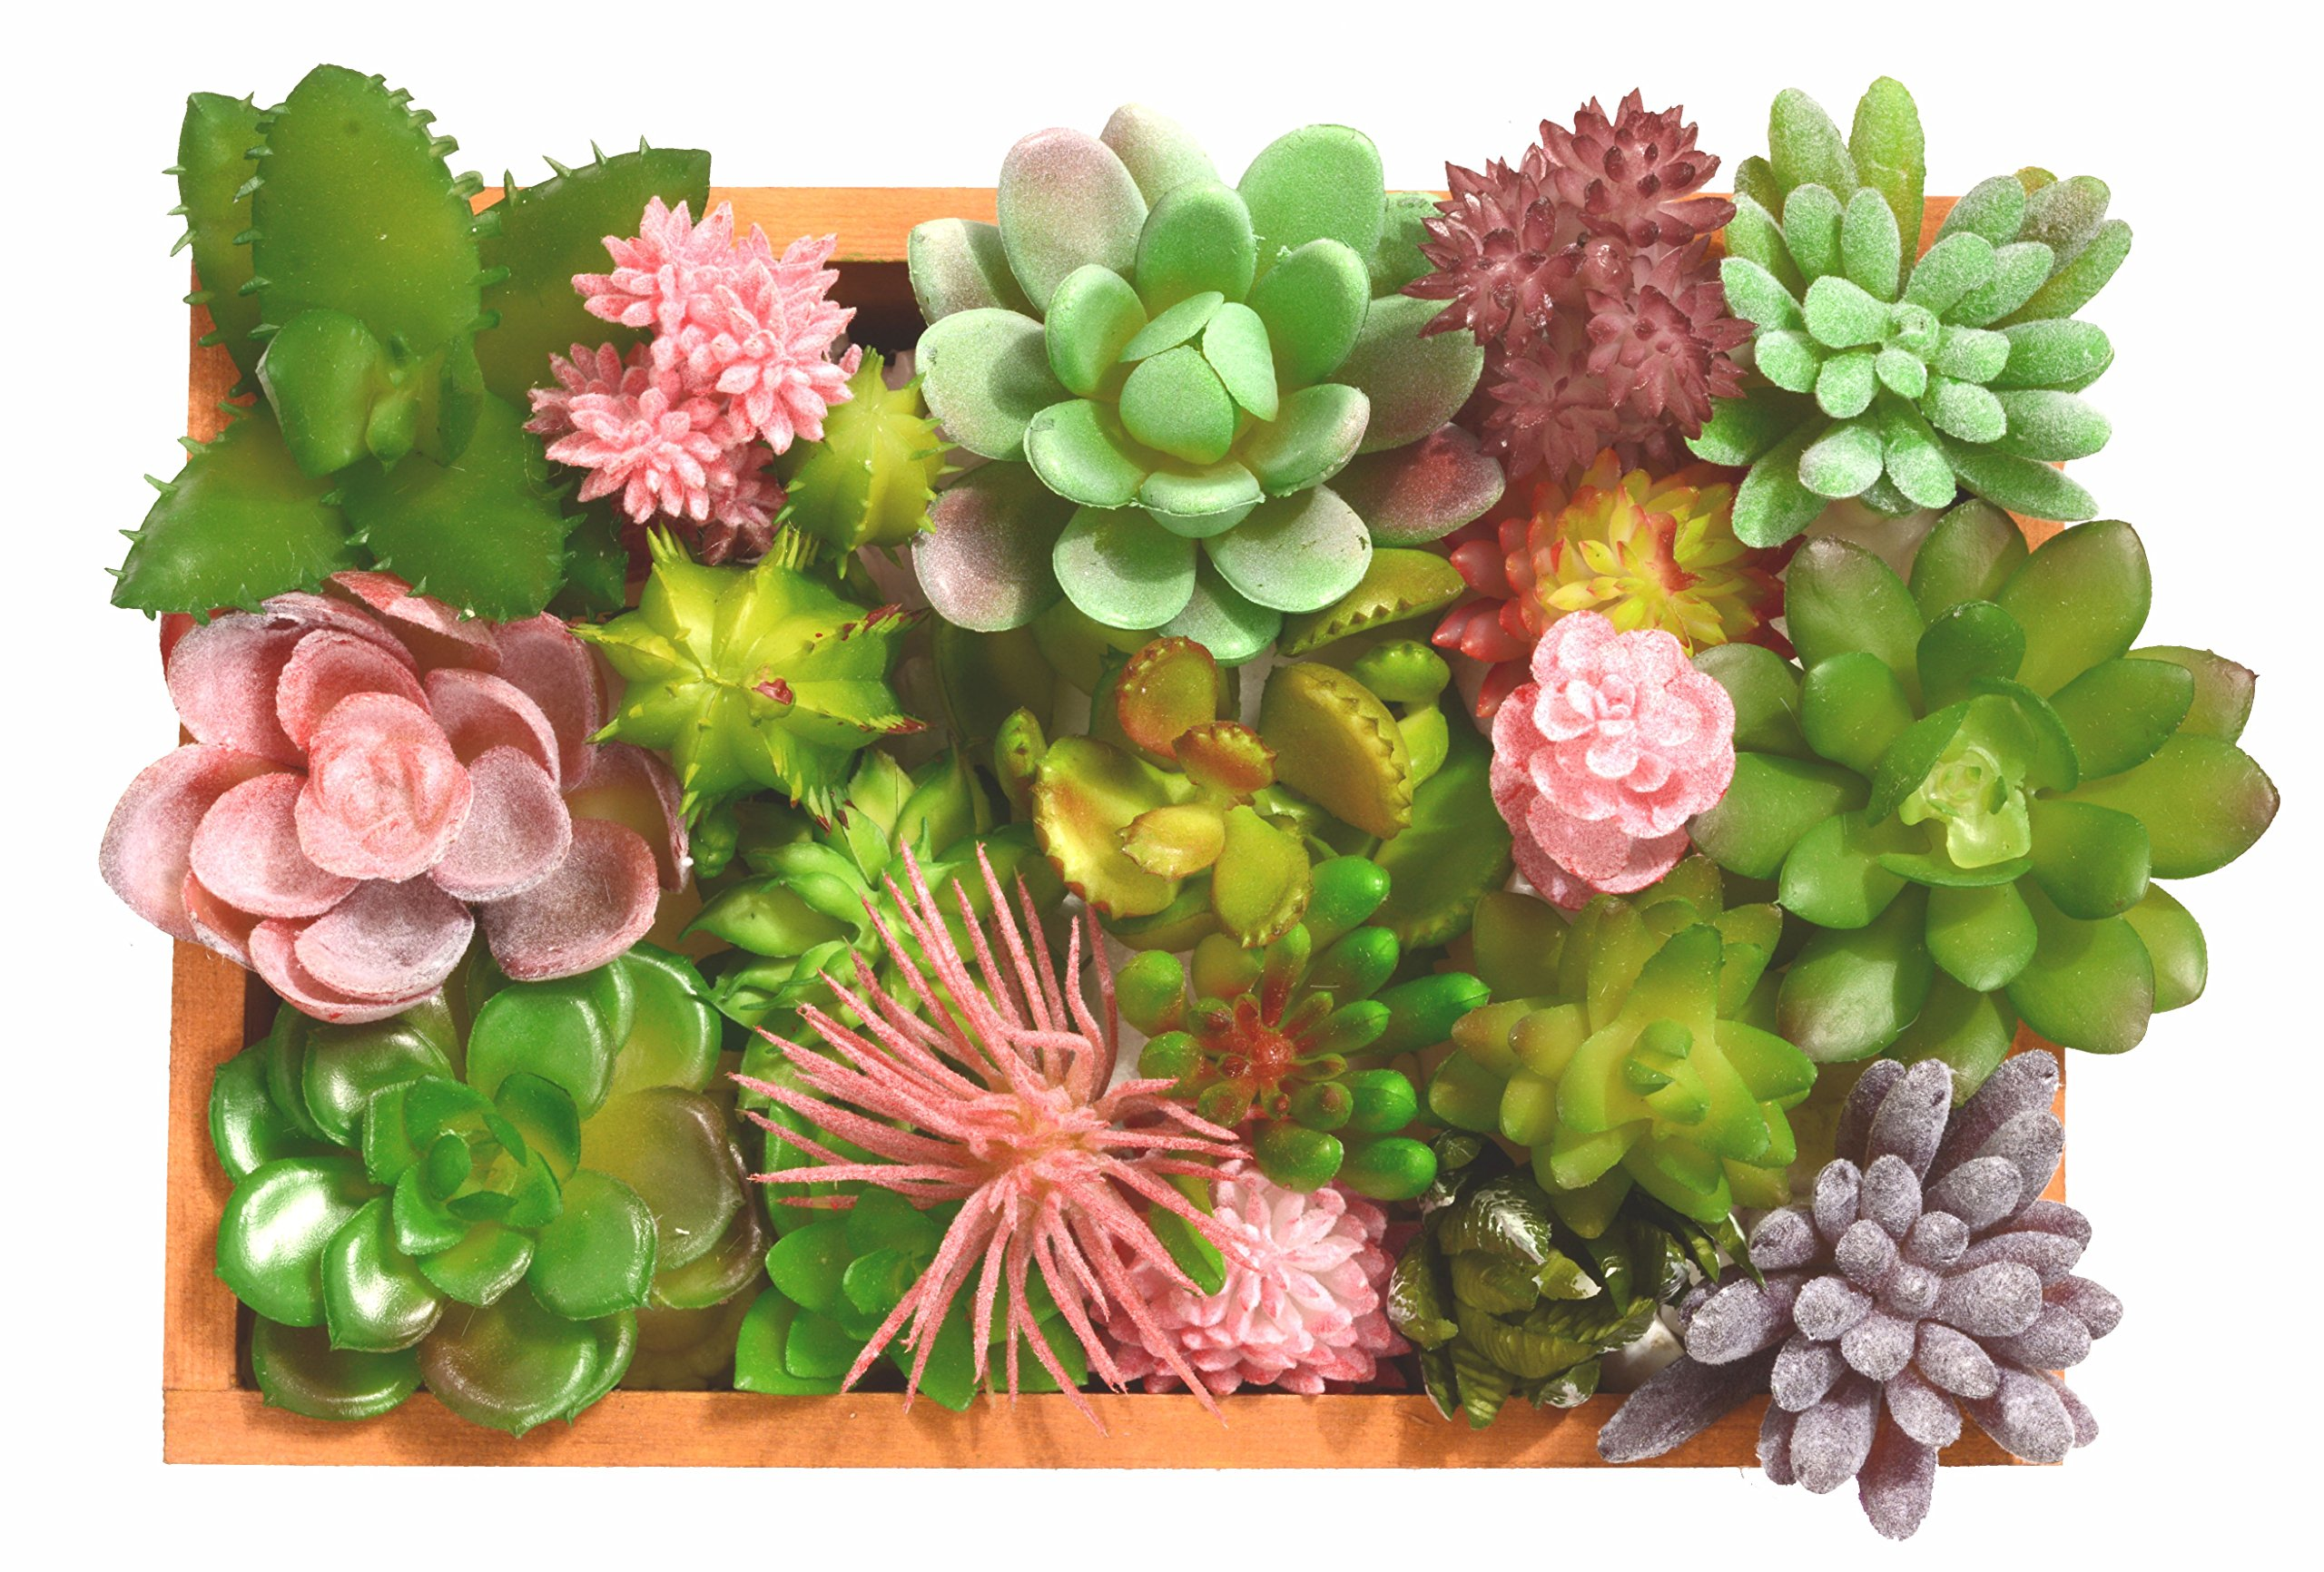 Mixed Artificial Succulent Flowers Plants, Faux Succulents Fake Succulent Plants, Mini Succulent & Cactus Plants in Wood Box, Assorted Decorative Faux Succulents (+ 1 Wood Box)